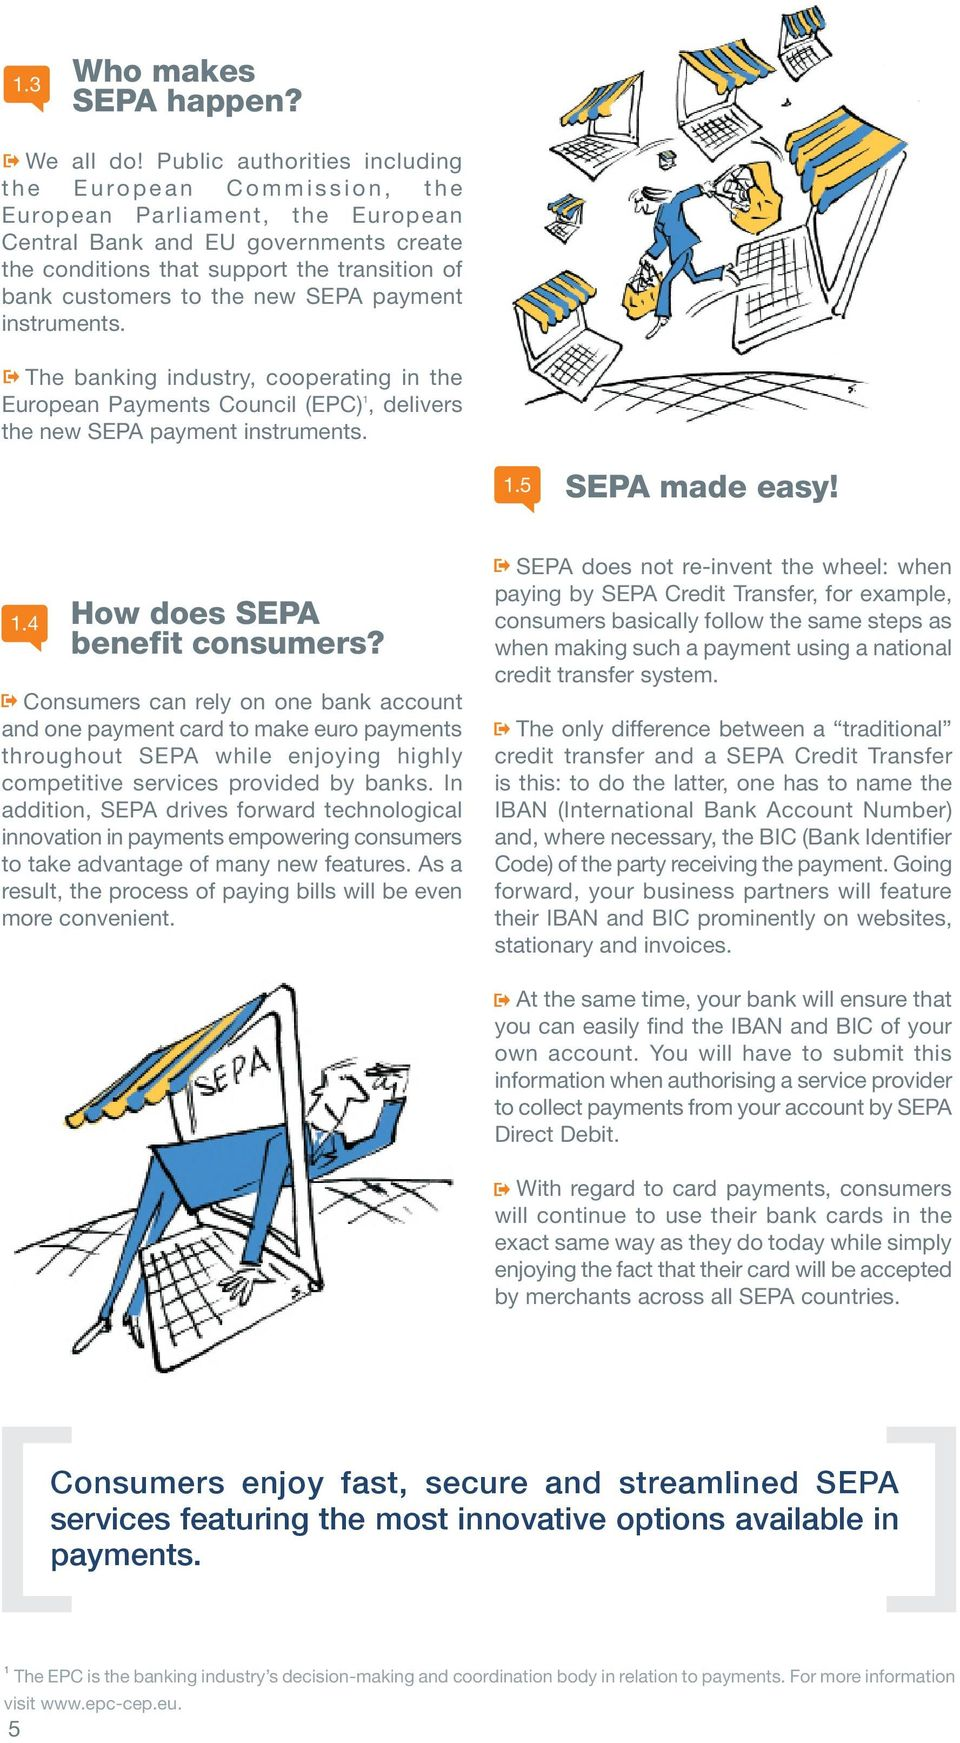 new SEPA payment instruments. The banking industry, cooperating in the European Payments Council (EPC) 1, delivers the new SEPA payment instruments. 1.5 SEPA made easy! 1.4 How does SEPA benefit consumers?